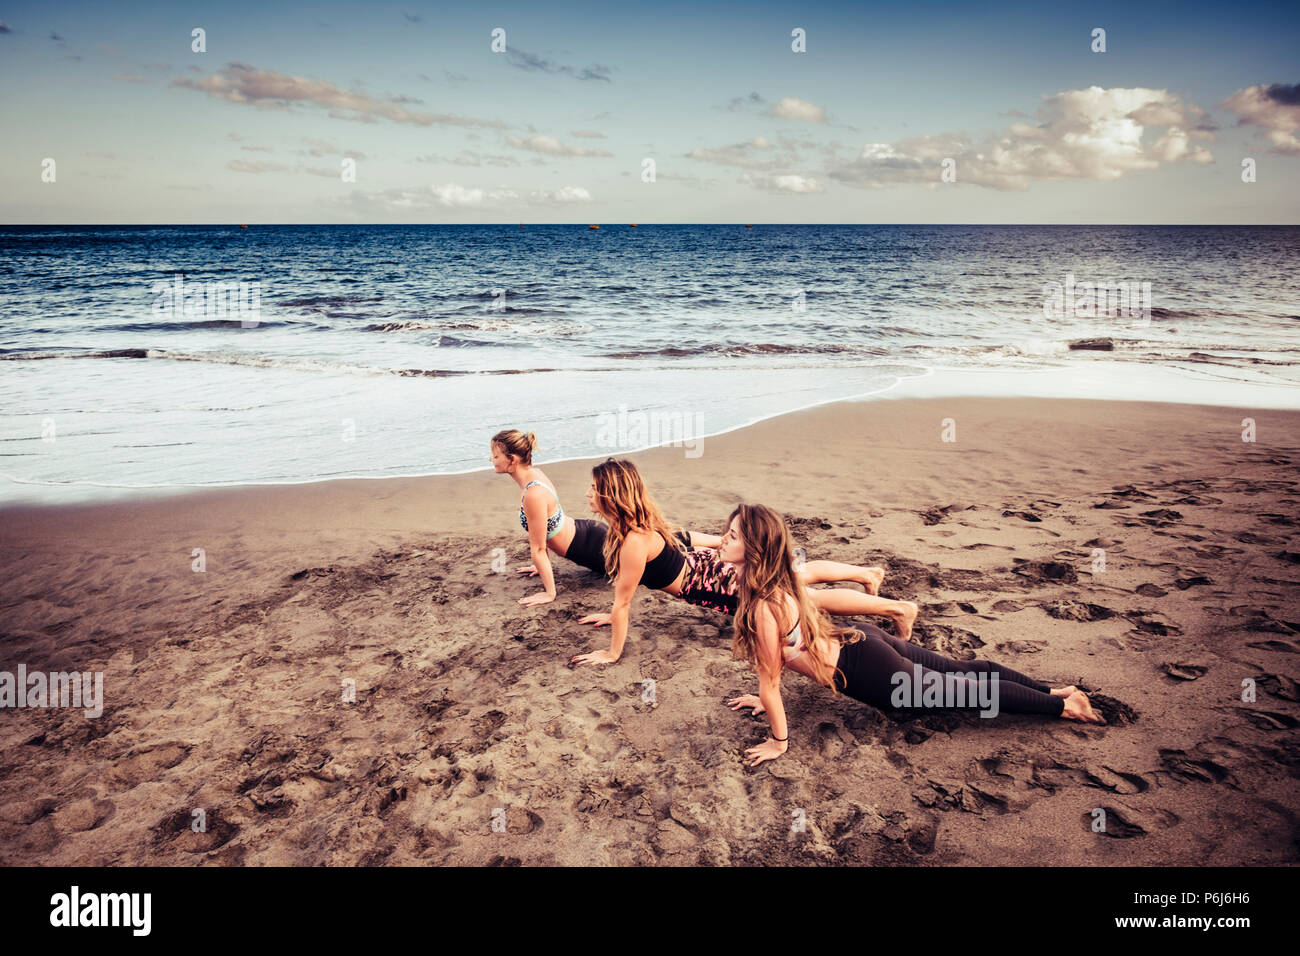 Three cacuasian young ladies doing pilates on the shore near the  waves and the ocean. outdoor leisure activity sport and lifestyle fitness for beauti - Stock Image